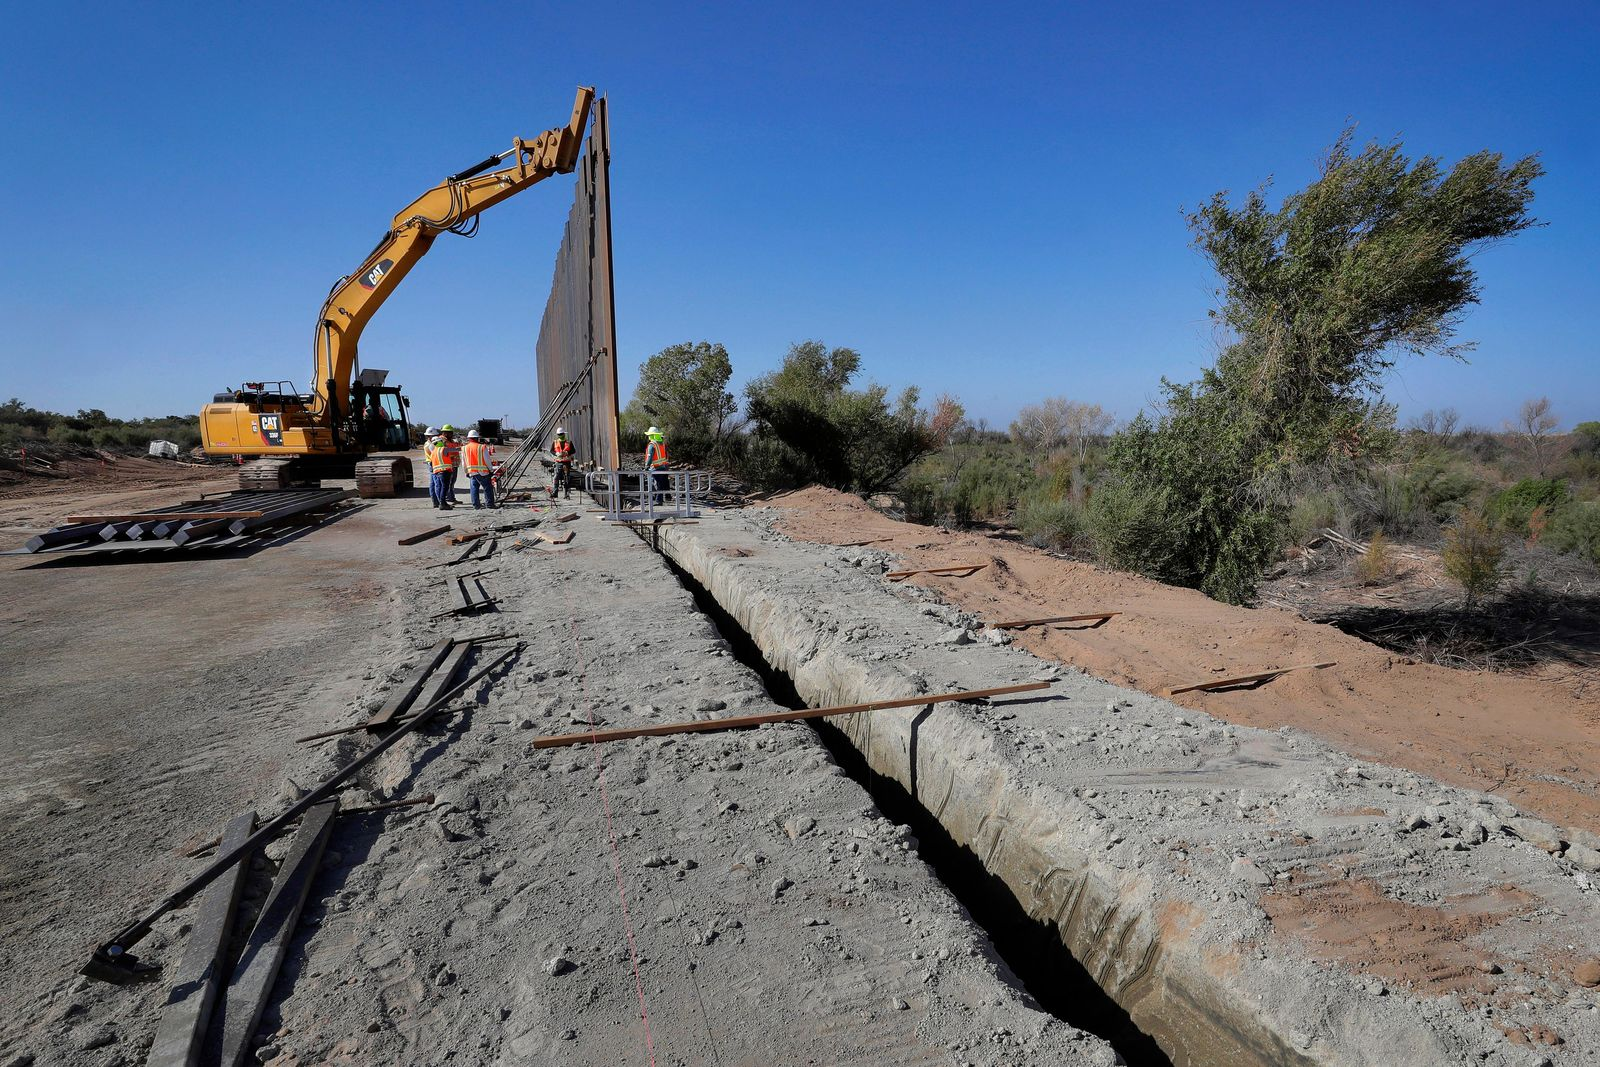 FILE - In this Sept. 10, 2019, file photo government contractors erect a section of Pentagon-funded border wall along the Colorado River, in Yuma, Ariz. A federal appeals court hears arguments against diverting Pentagon money for border wall construction as time runs out. It says the Trump administration has moved quickly to spend the money after the Supreme Court rejected an emergency appeal to prevent work from starting in July. cut to pay for President Donald Trump's wall. (AP Photo/Matt York, File)